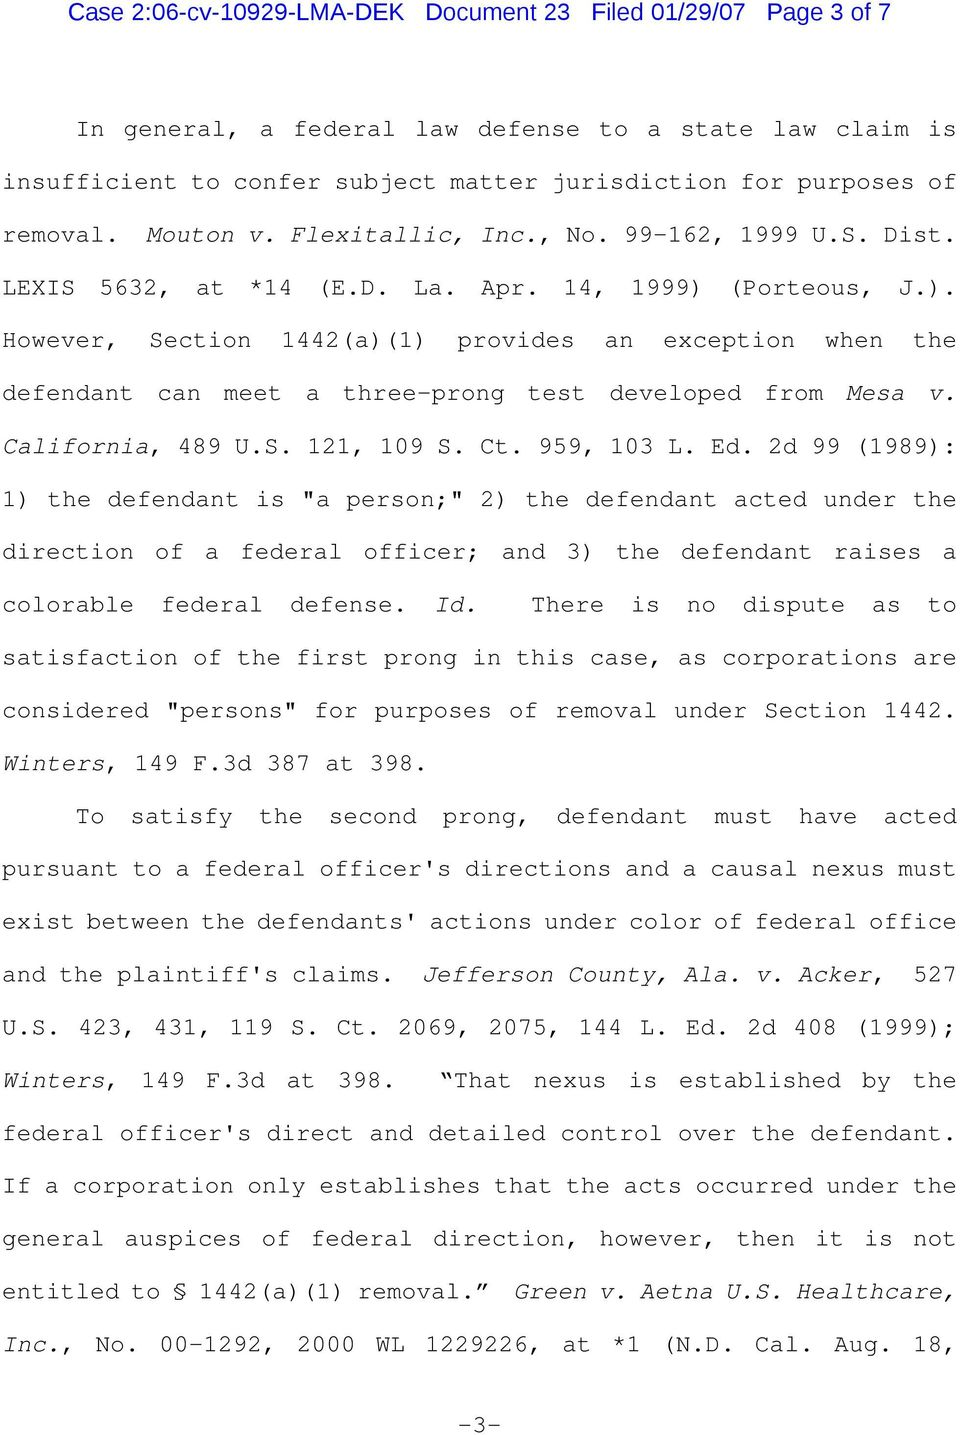 (Porteous, J.). However, Section 1442(a)(1) provides an exception when the defendant can meet a three-prong test developed from Mesa v. California, 489 U.S. 121, 109 S. Ct. 959, 103 L. Ed.